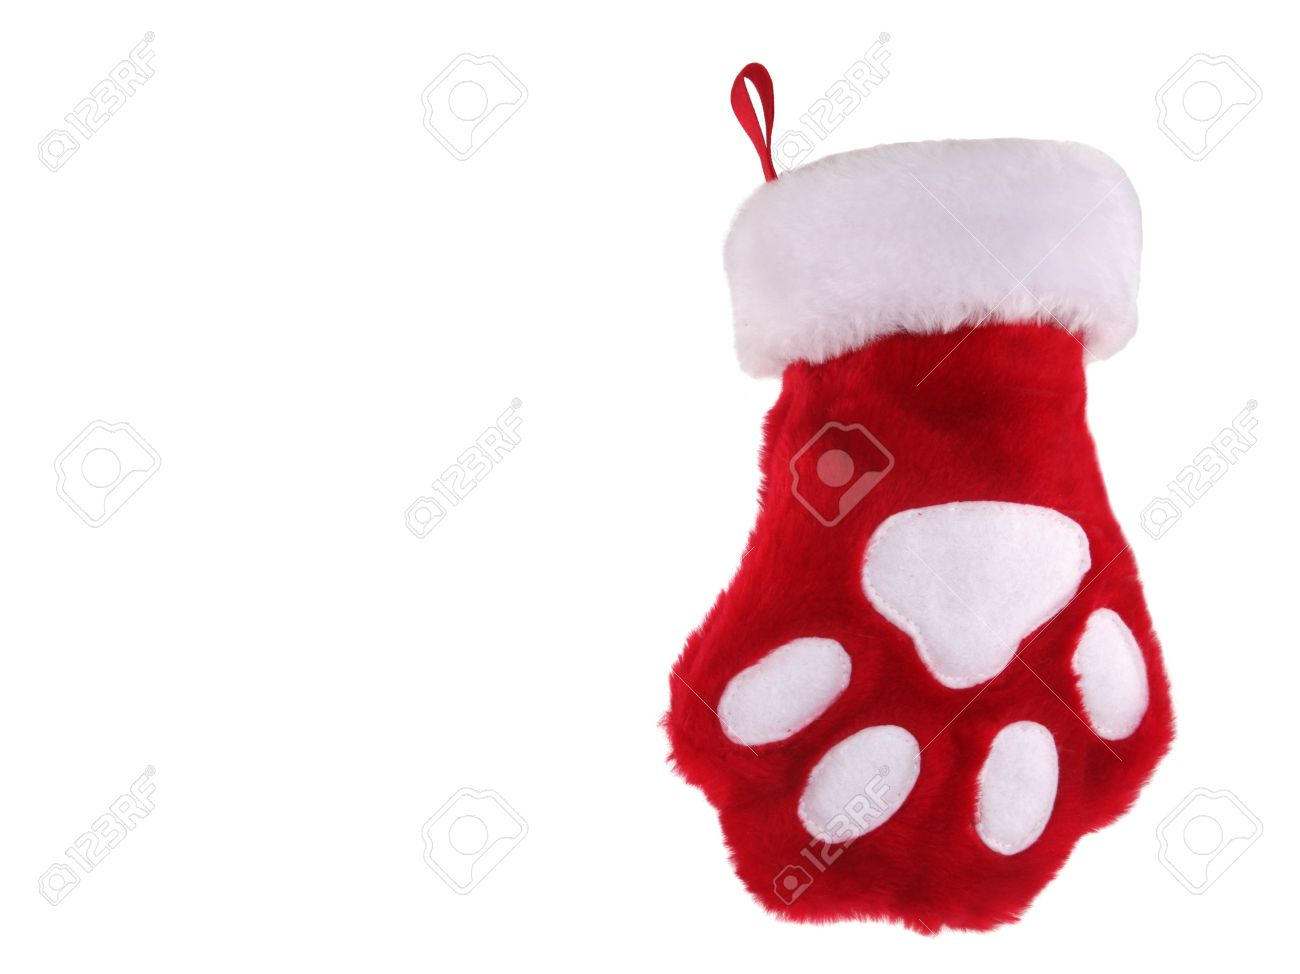 Red And White Christmas Stocking With Paw Print Isolated On White